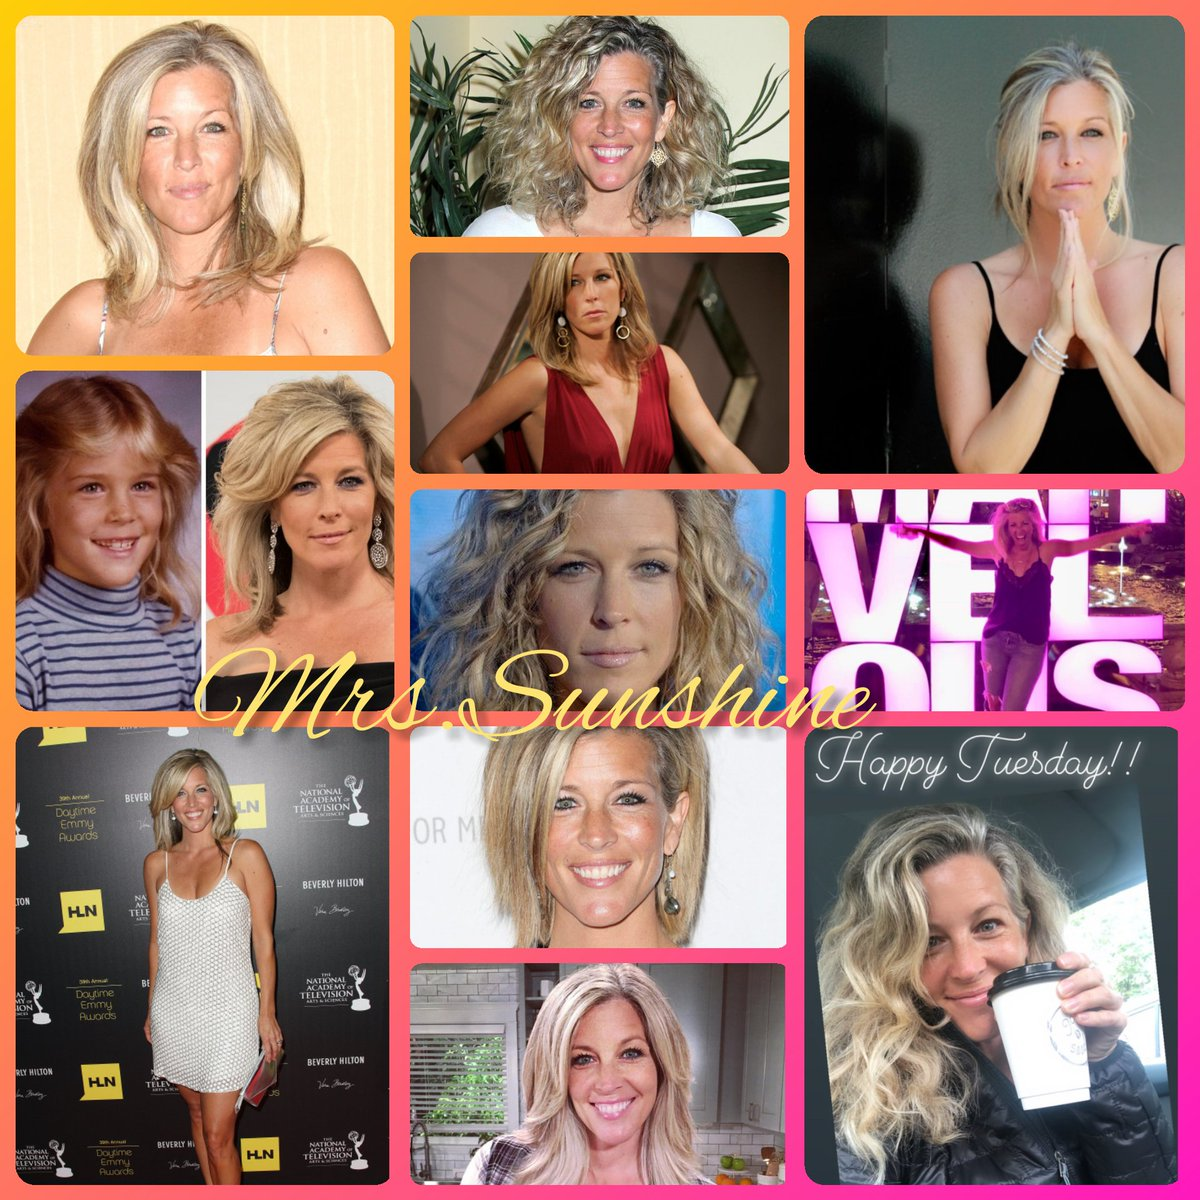 My Woman-Crush-Everyday Mrs. Sunshine @lldubs  nothing brings her down and she's such an strong woman.  She inspire and motivate me, is so beautiful inside and outside. Oh and she brighten every room she's in. I wish i could see her glow at the #BFF but I can't and that sucks. <br>http://pic.twitter.com/bOzkeVj2QG